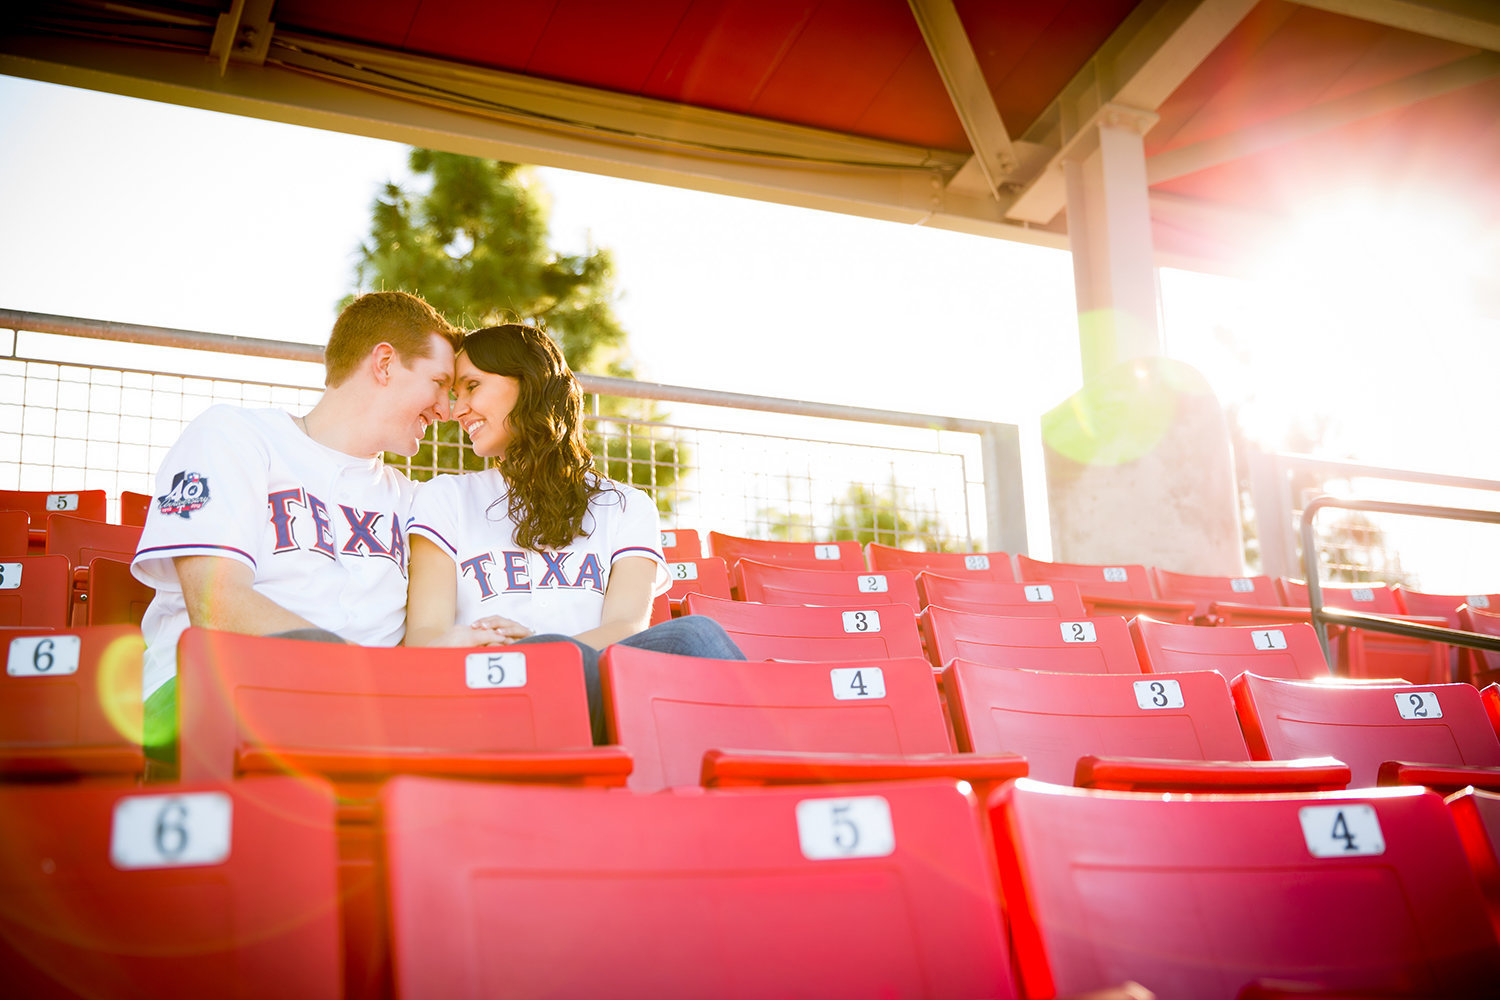 San Diego State engagement photos cute couple at stadium